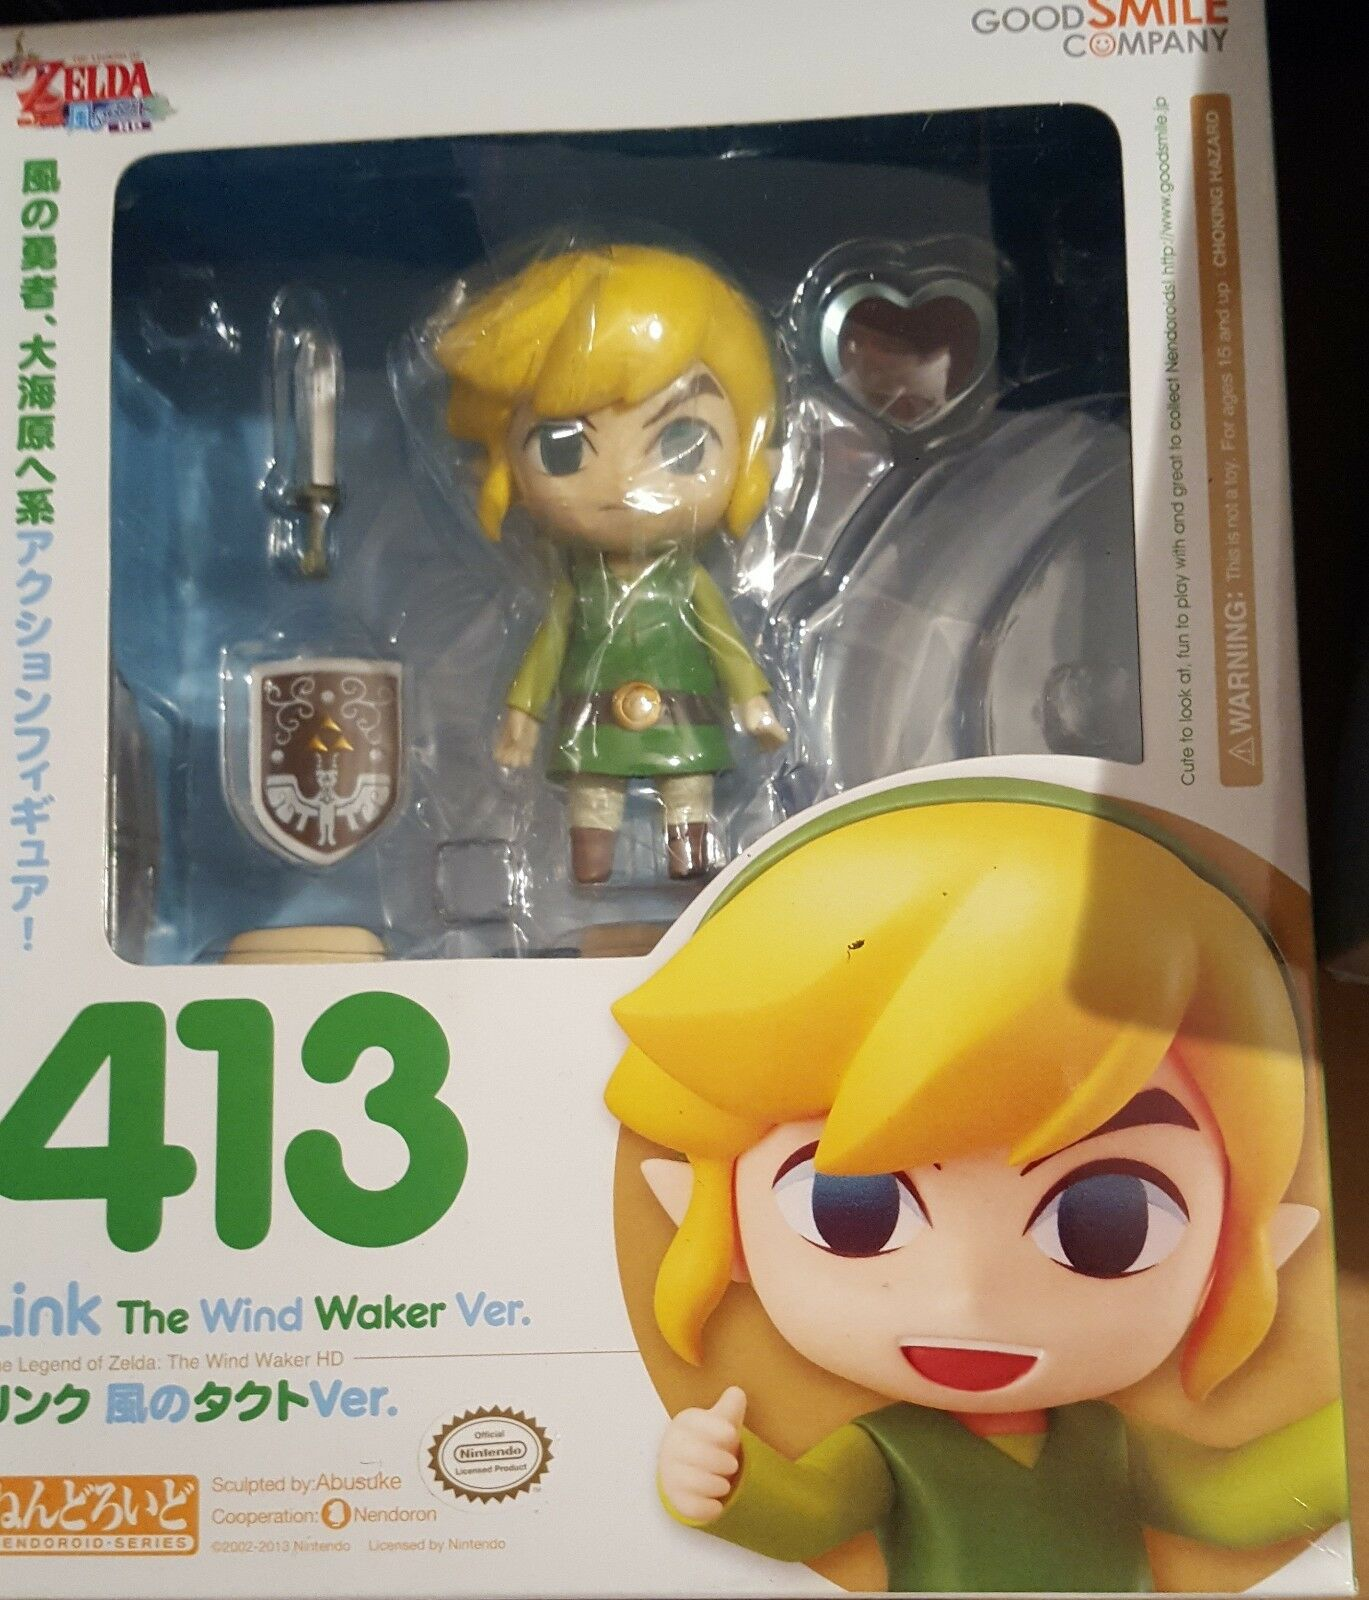 The Legend Of Zelda The Wind Waker Ver. HD action figure 413 Good Smile Company